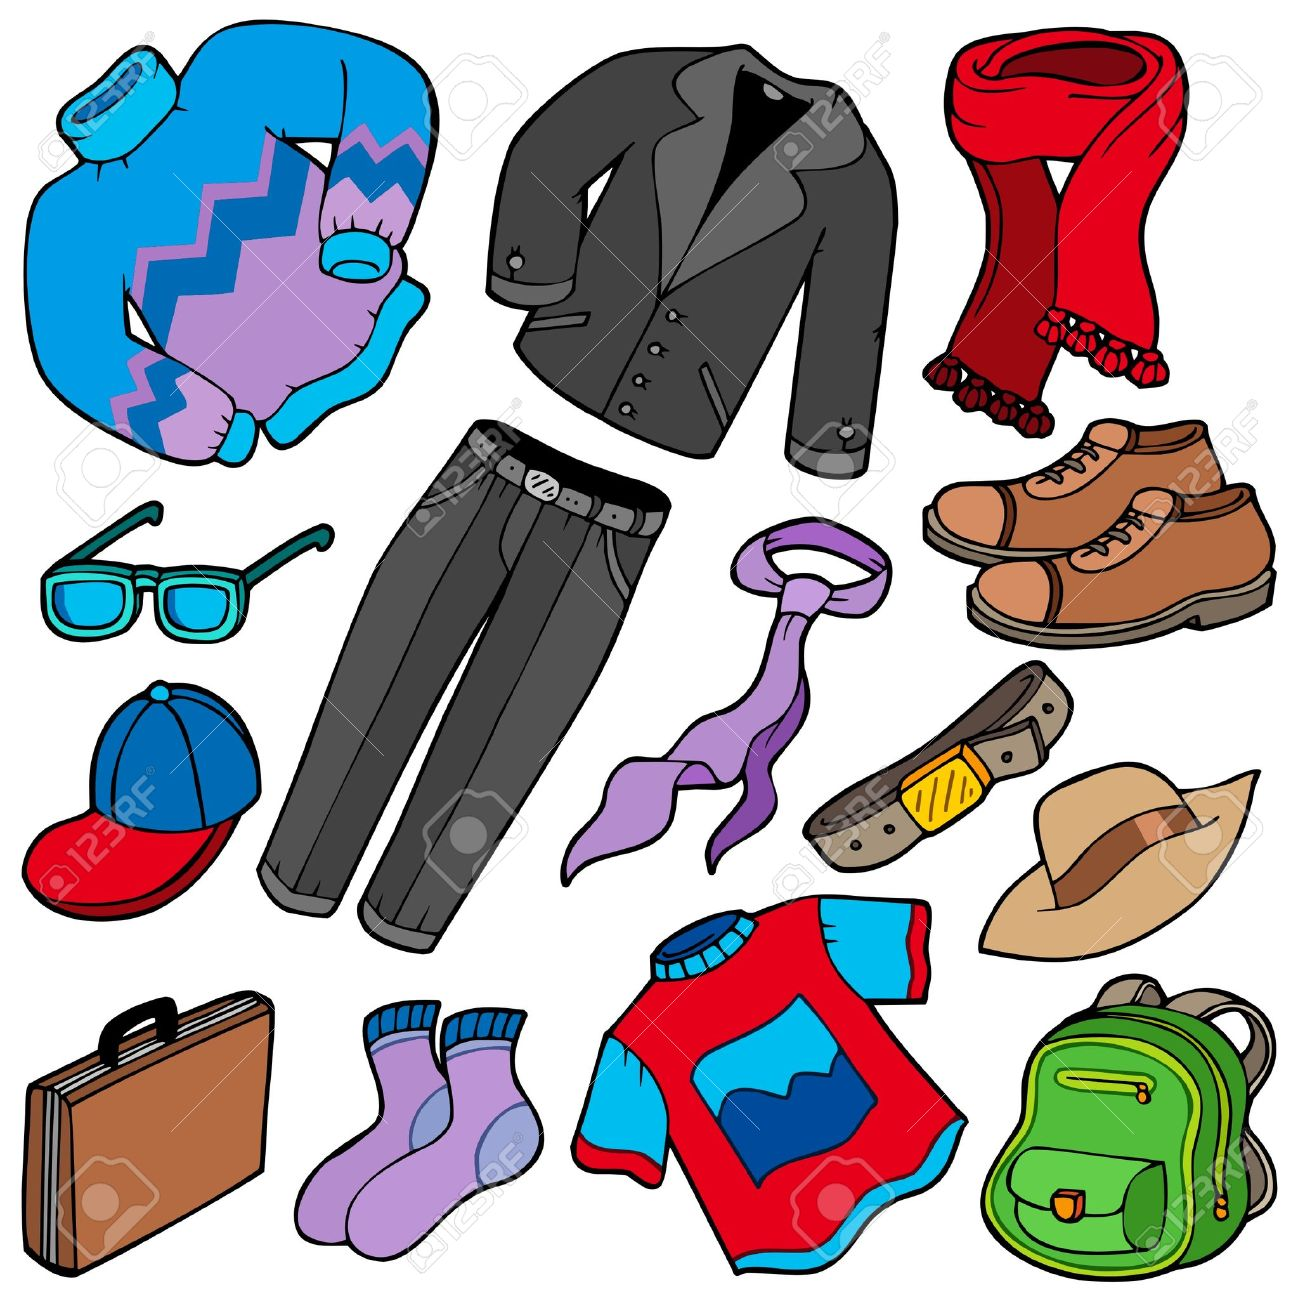 men apparel collection illustration royalty free cliparts